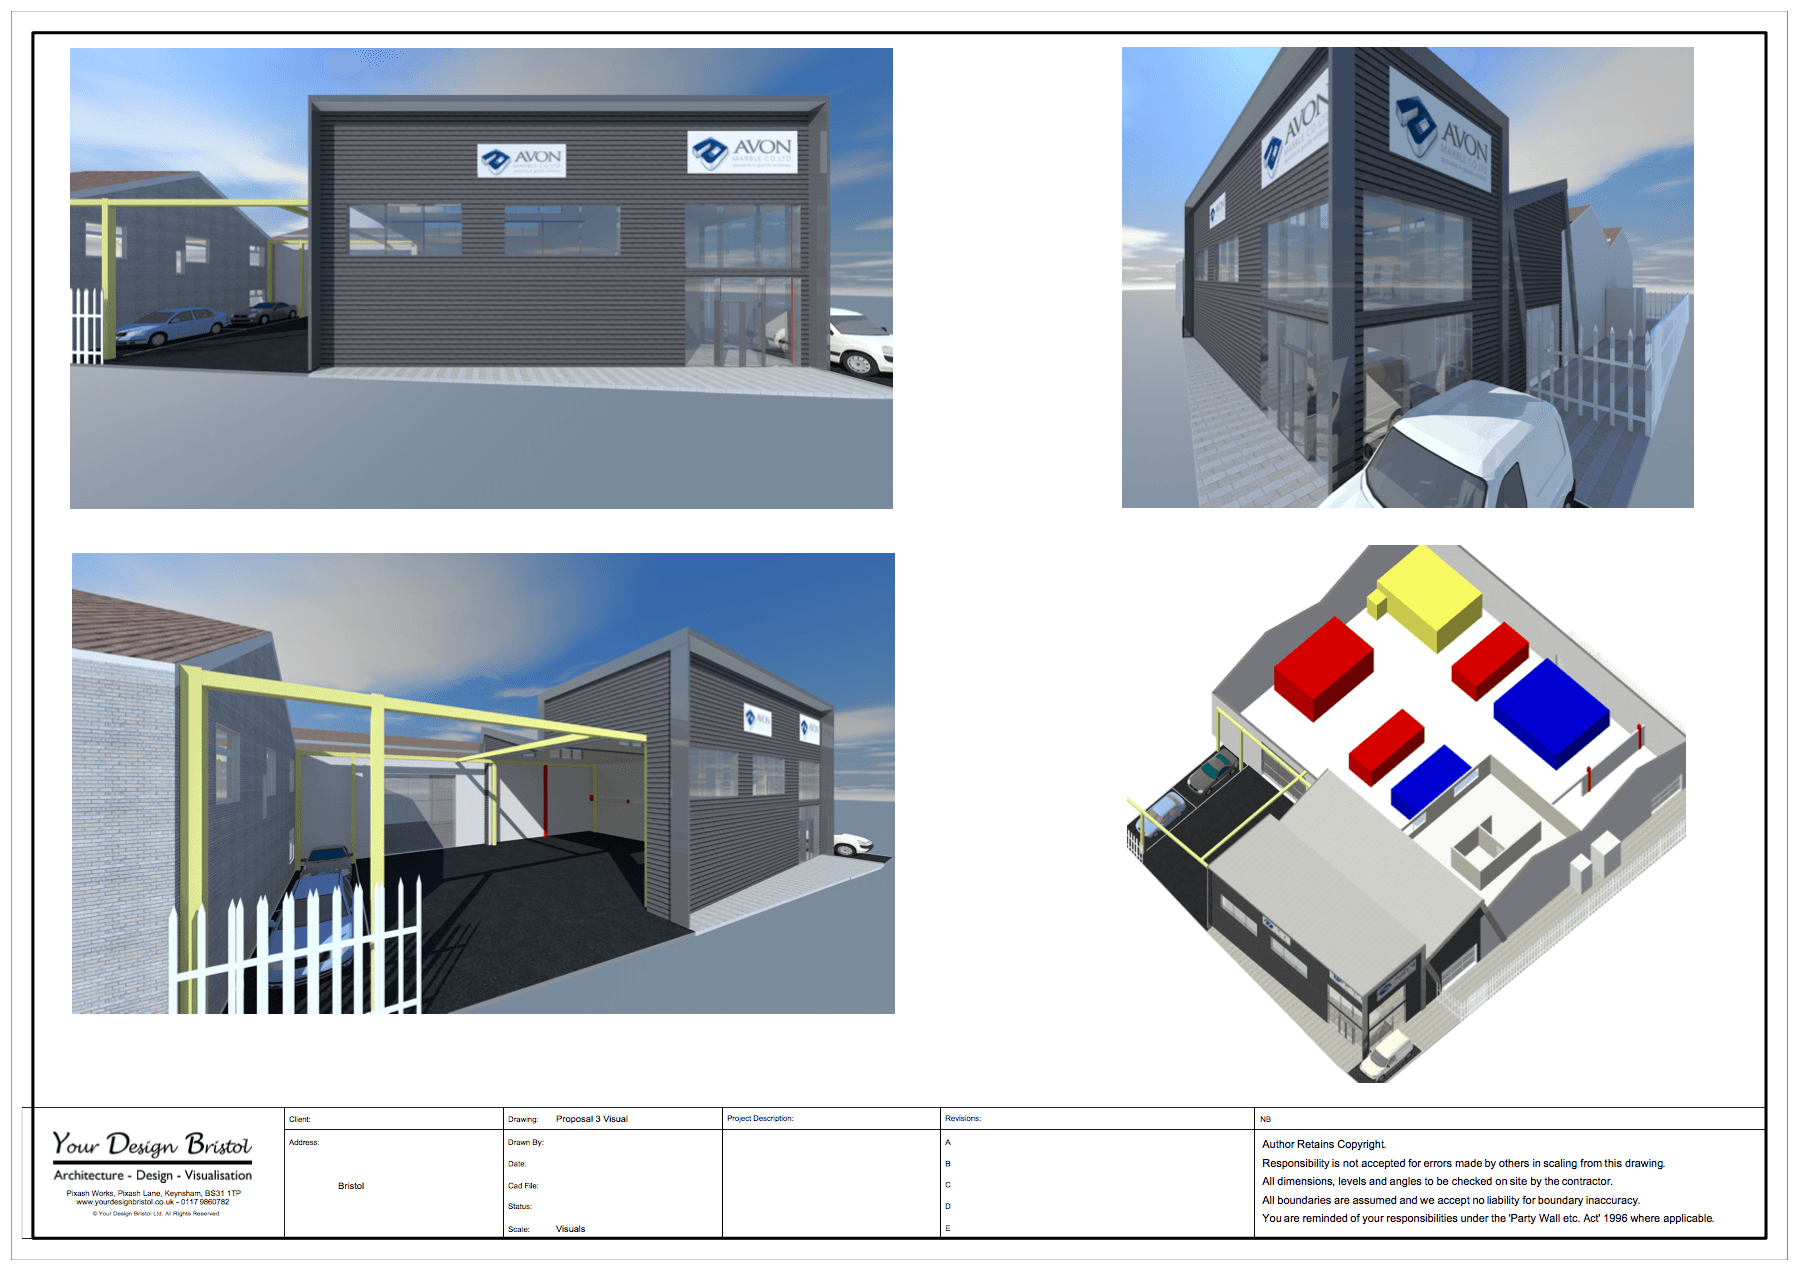 Commercial Extension Design and Visualisation